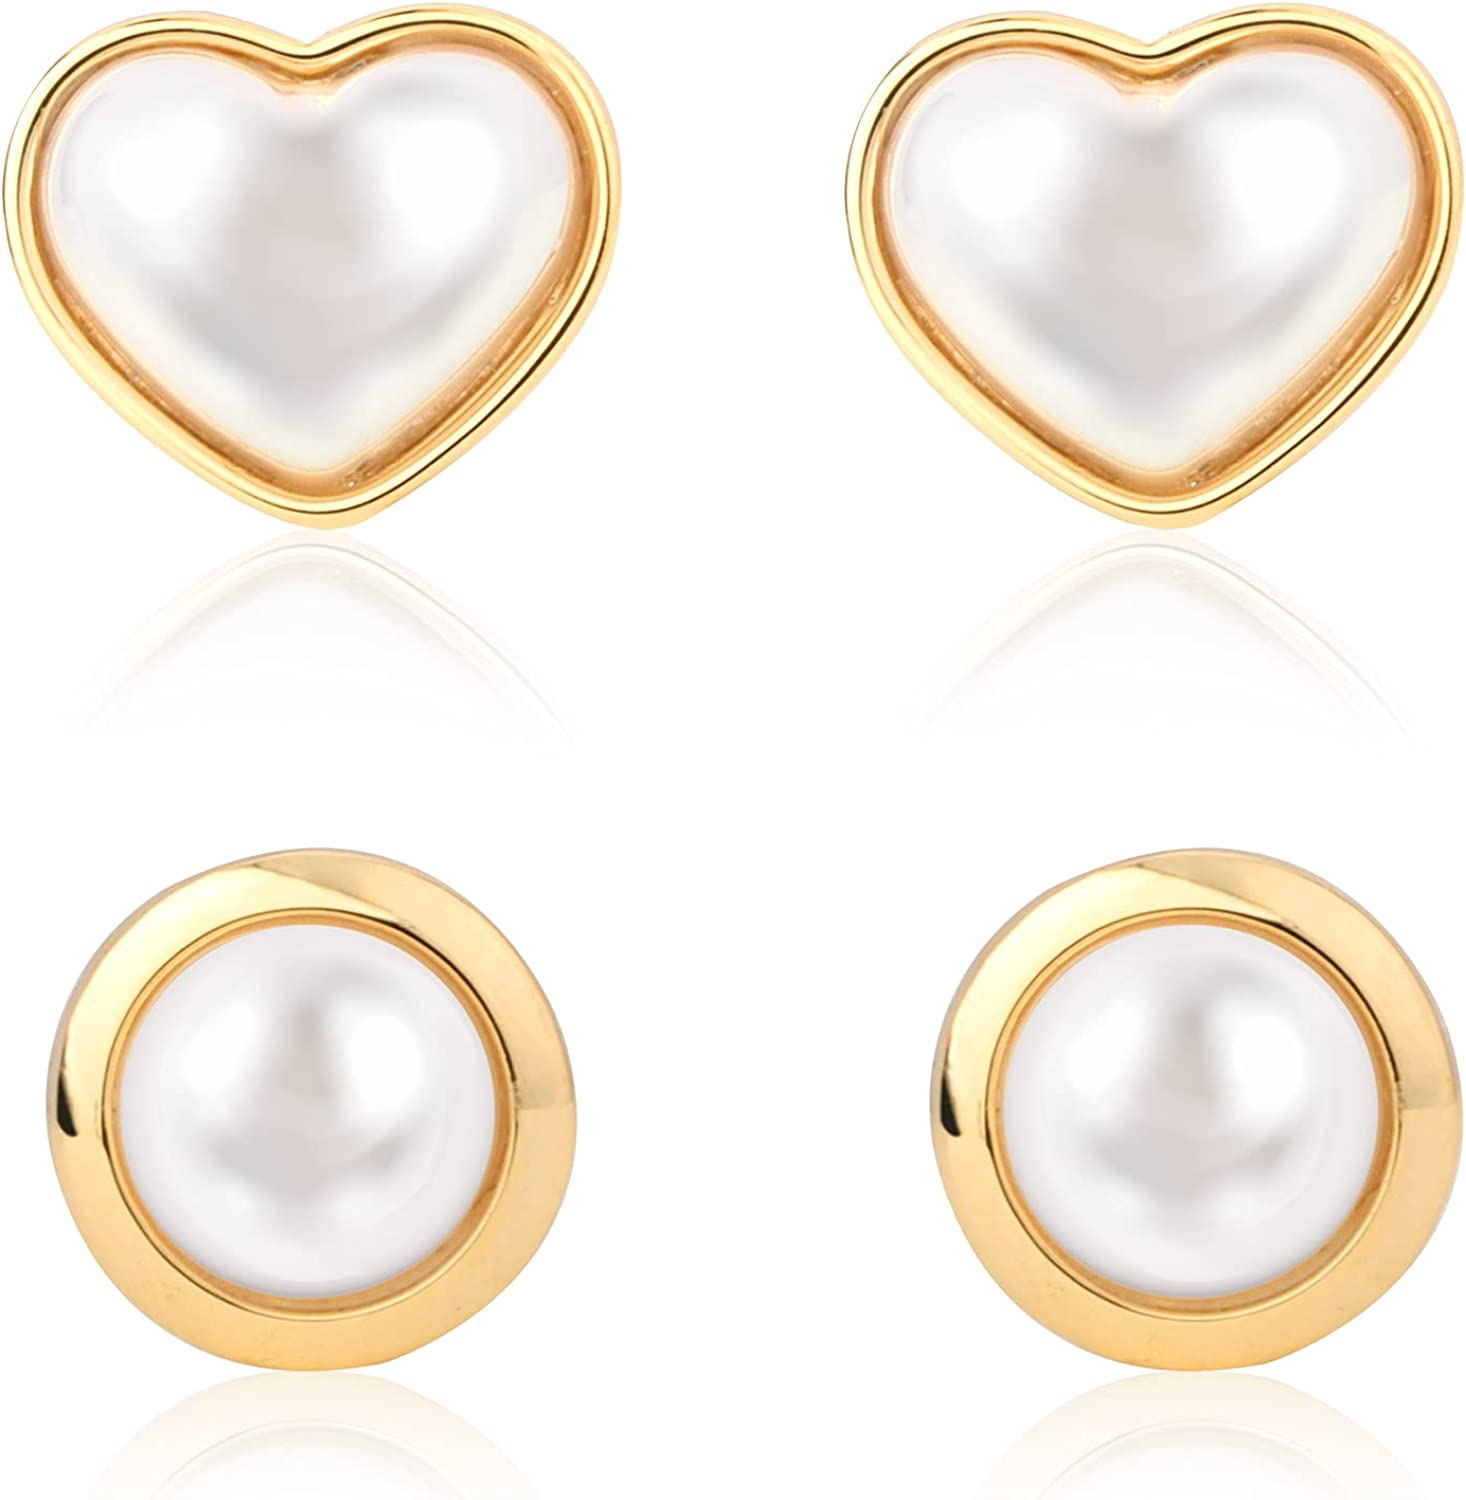 Cecillia Pearl Earrings Ranking TOP18 Sale special price for Imitation Women Round Earring